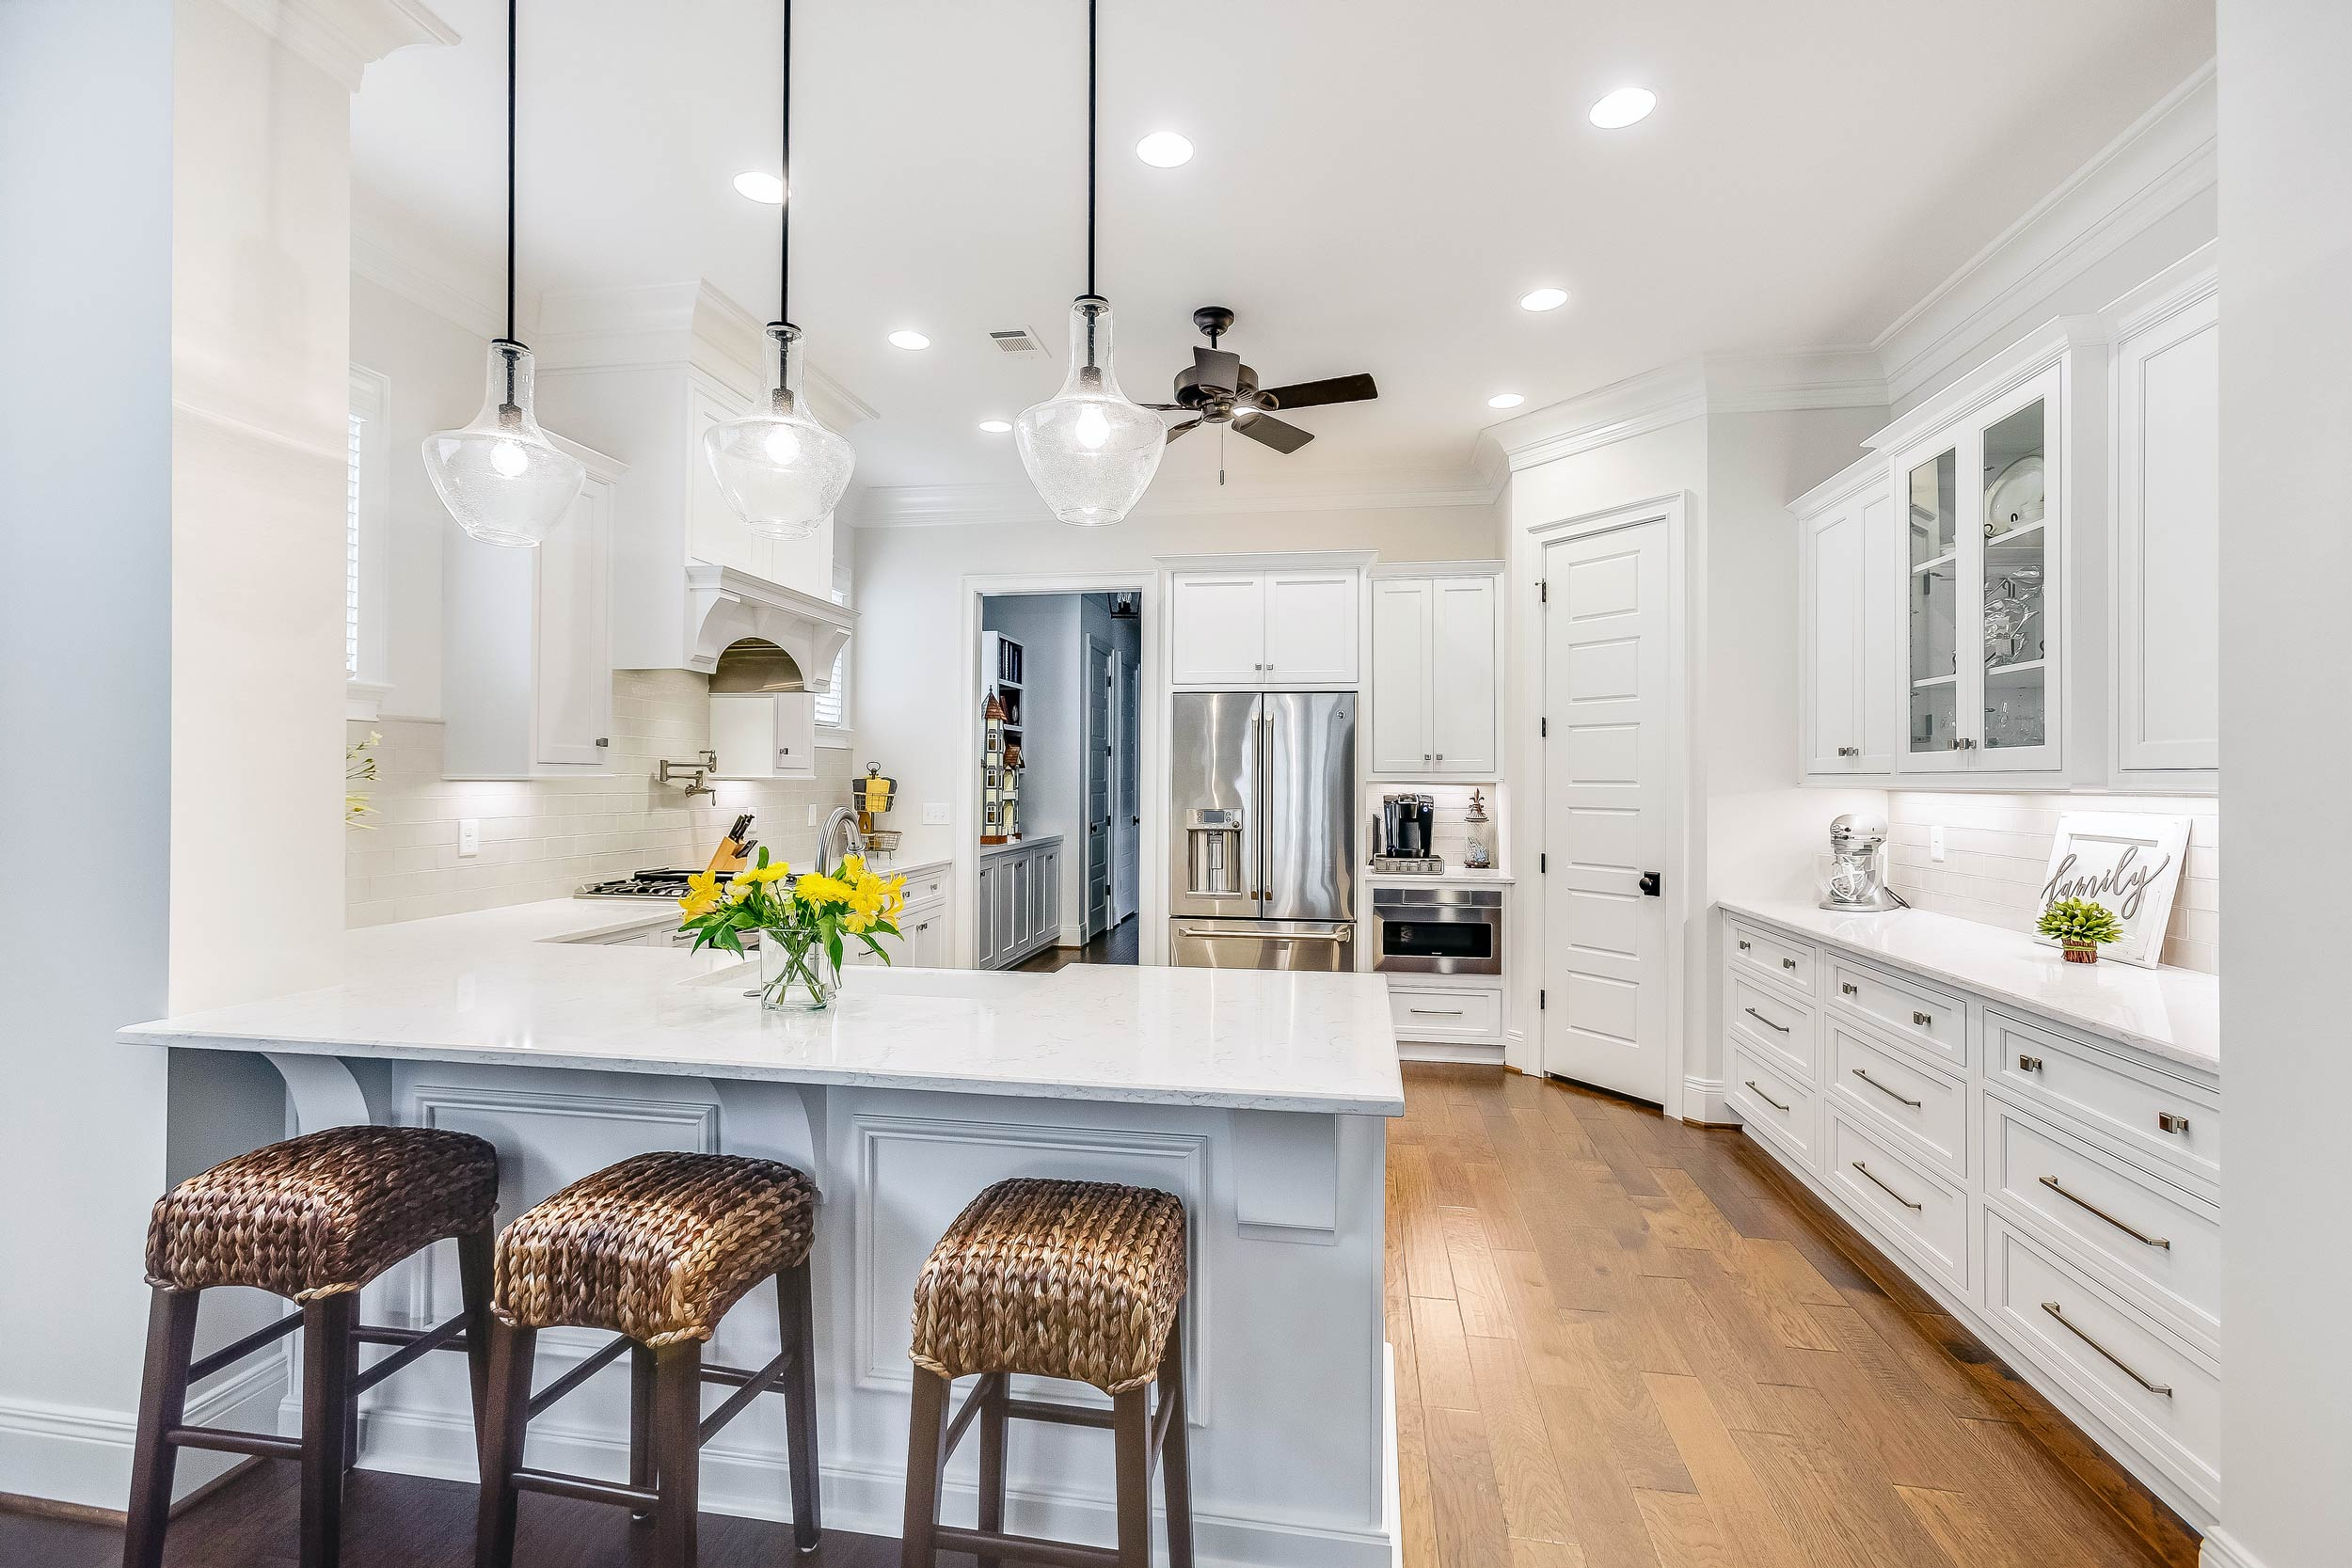 Kitchen Design Trends in Tuscaloosa Alabama